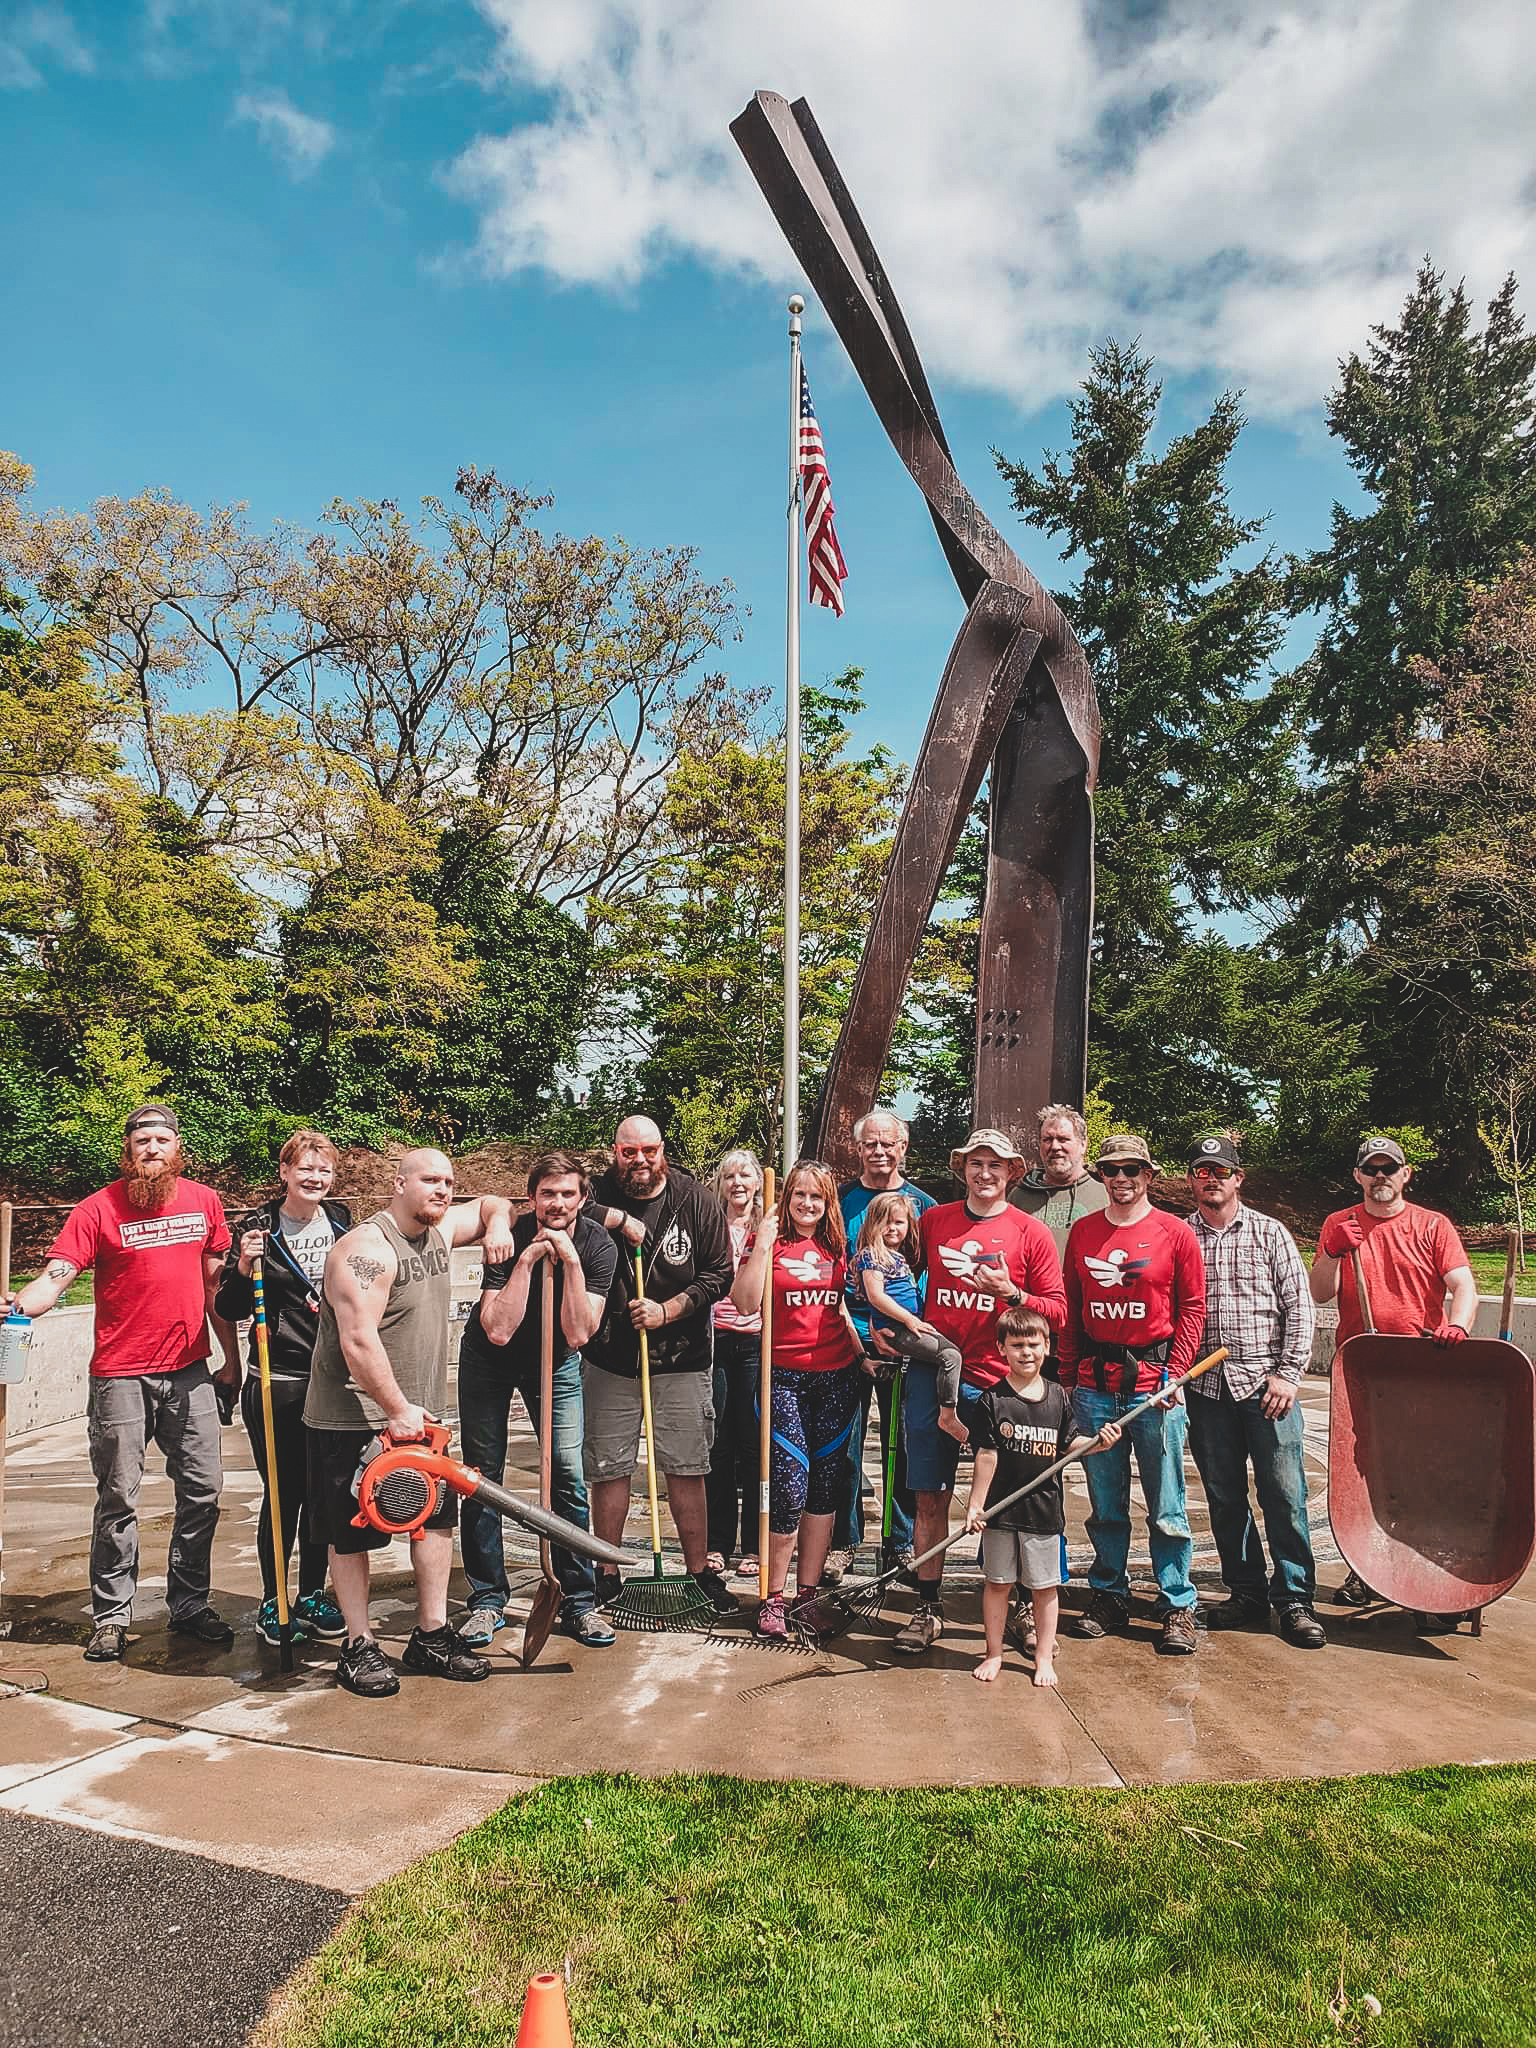 Here we stand next to a couple of the volunteers from the Bremerton VFW Post, some community members, and members of Team RWB Kitsap. It was great to see people from all different parts of our Kitsap community come to help clean up the Memorial site.